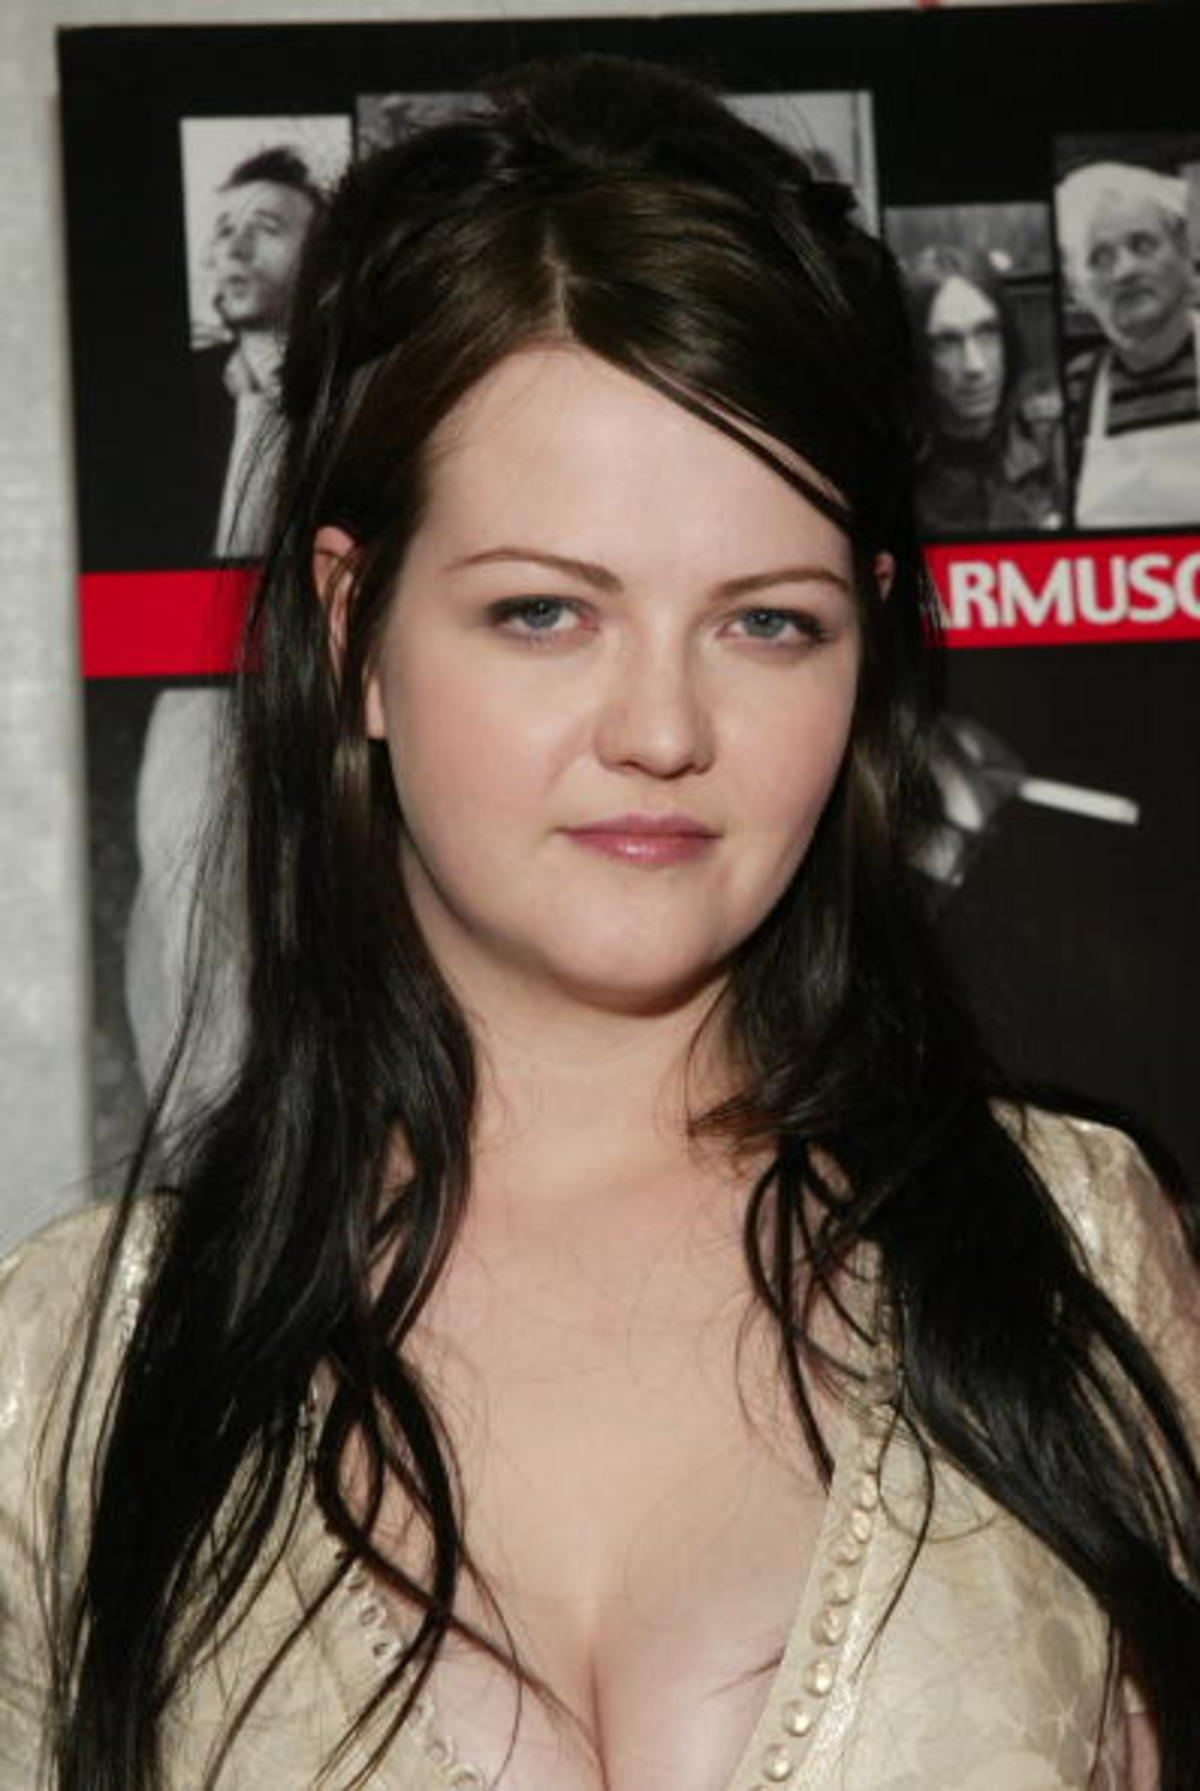 How tall is Meg White?